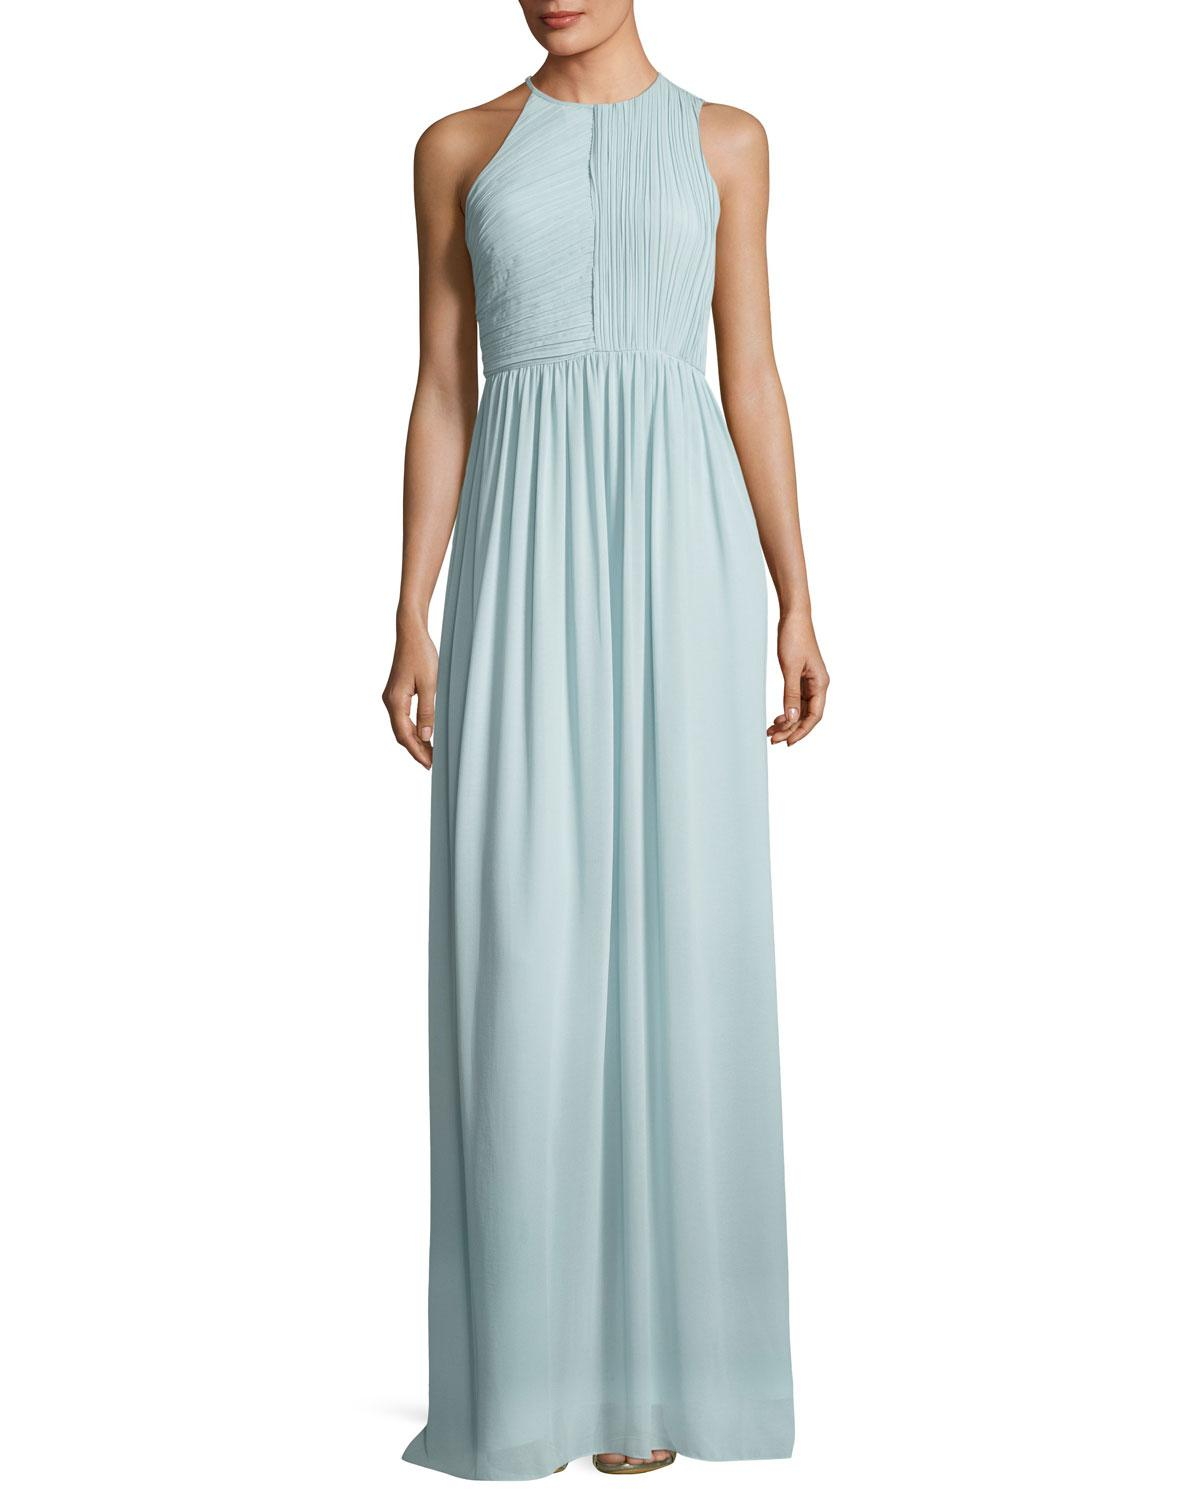 Lyst - Halston Heritage Fortuny Plissé Back Drape Evening Gown in Blue